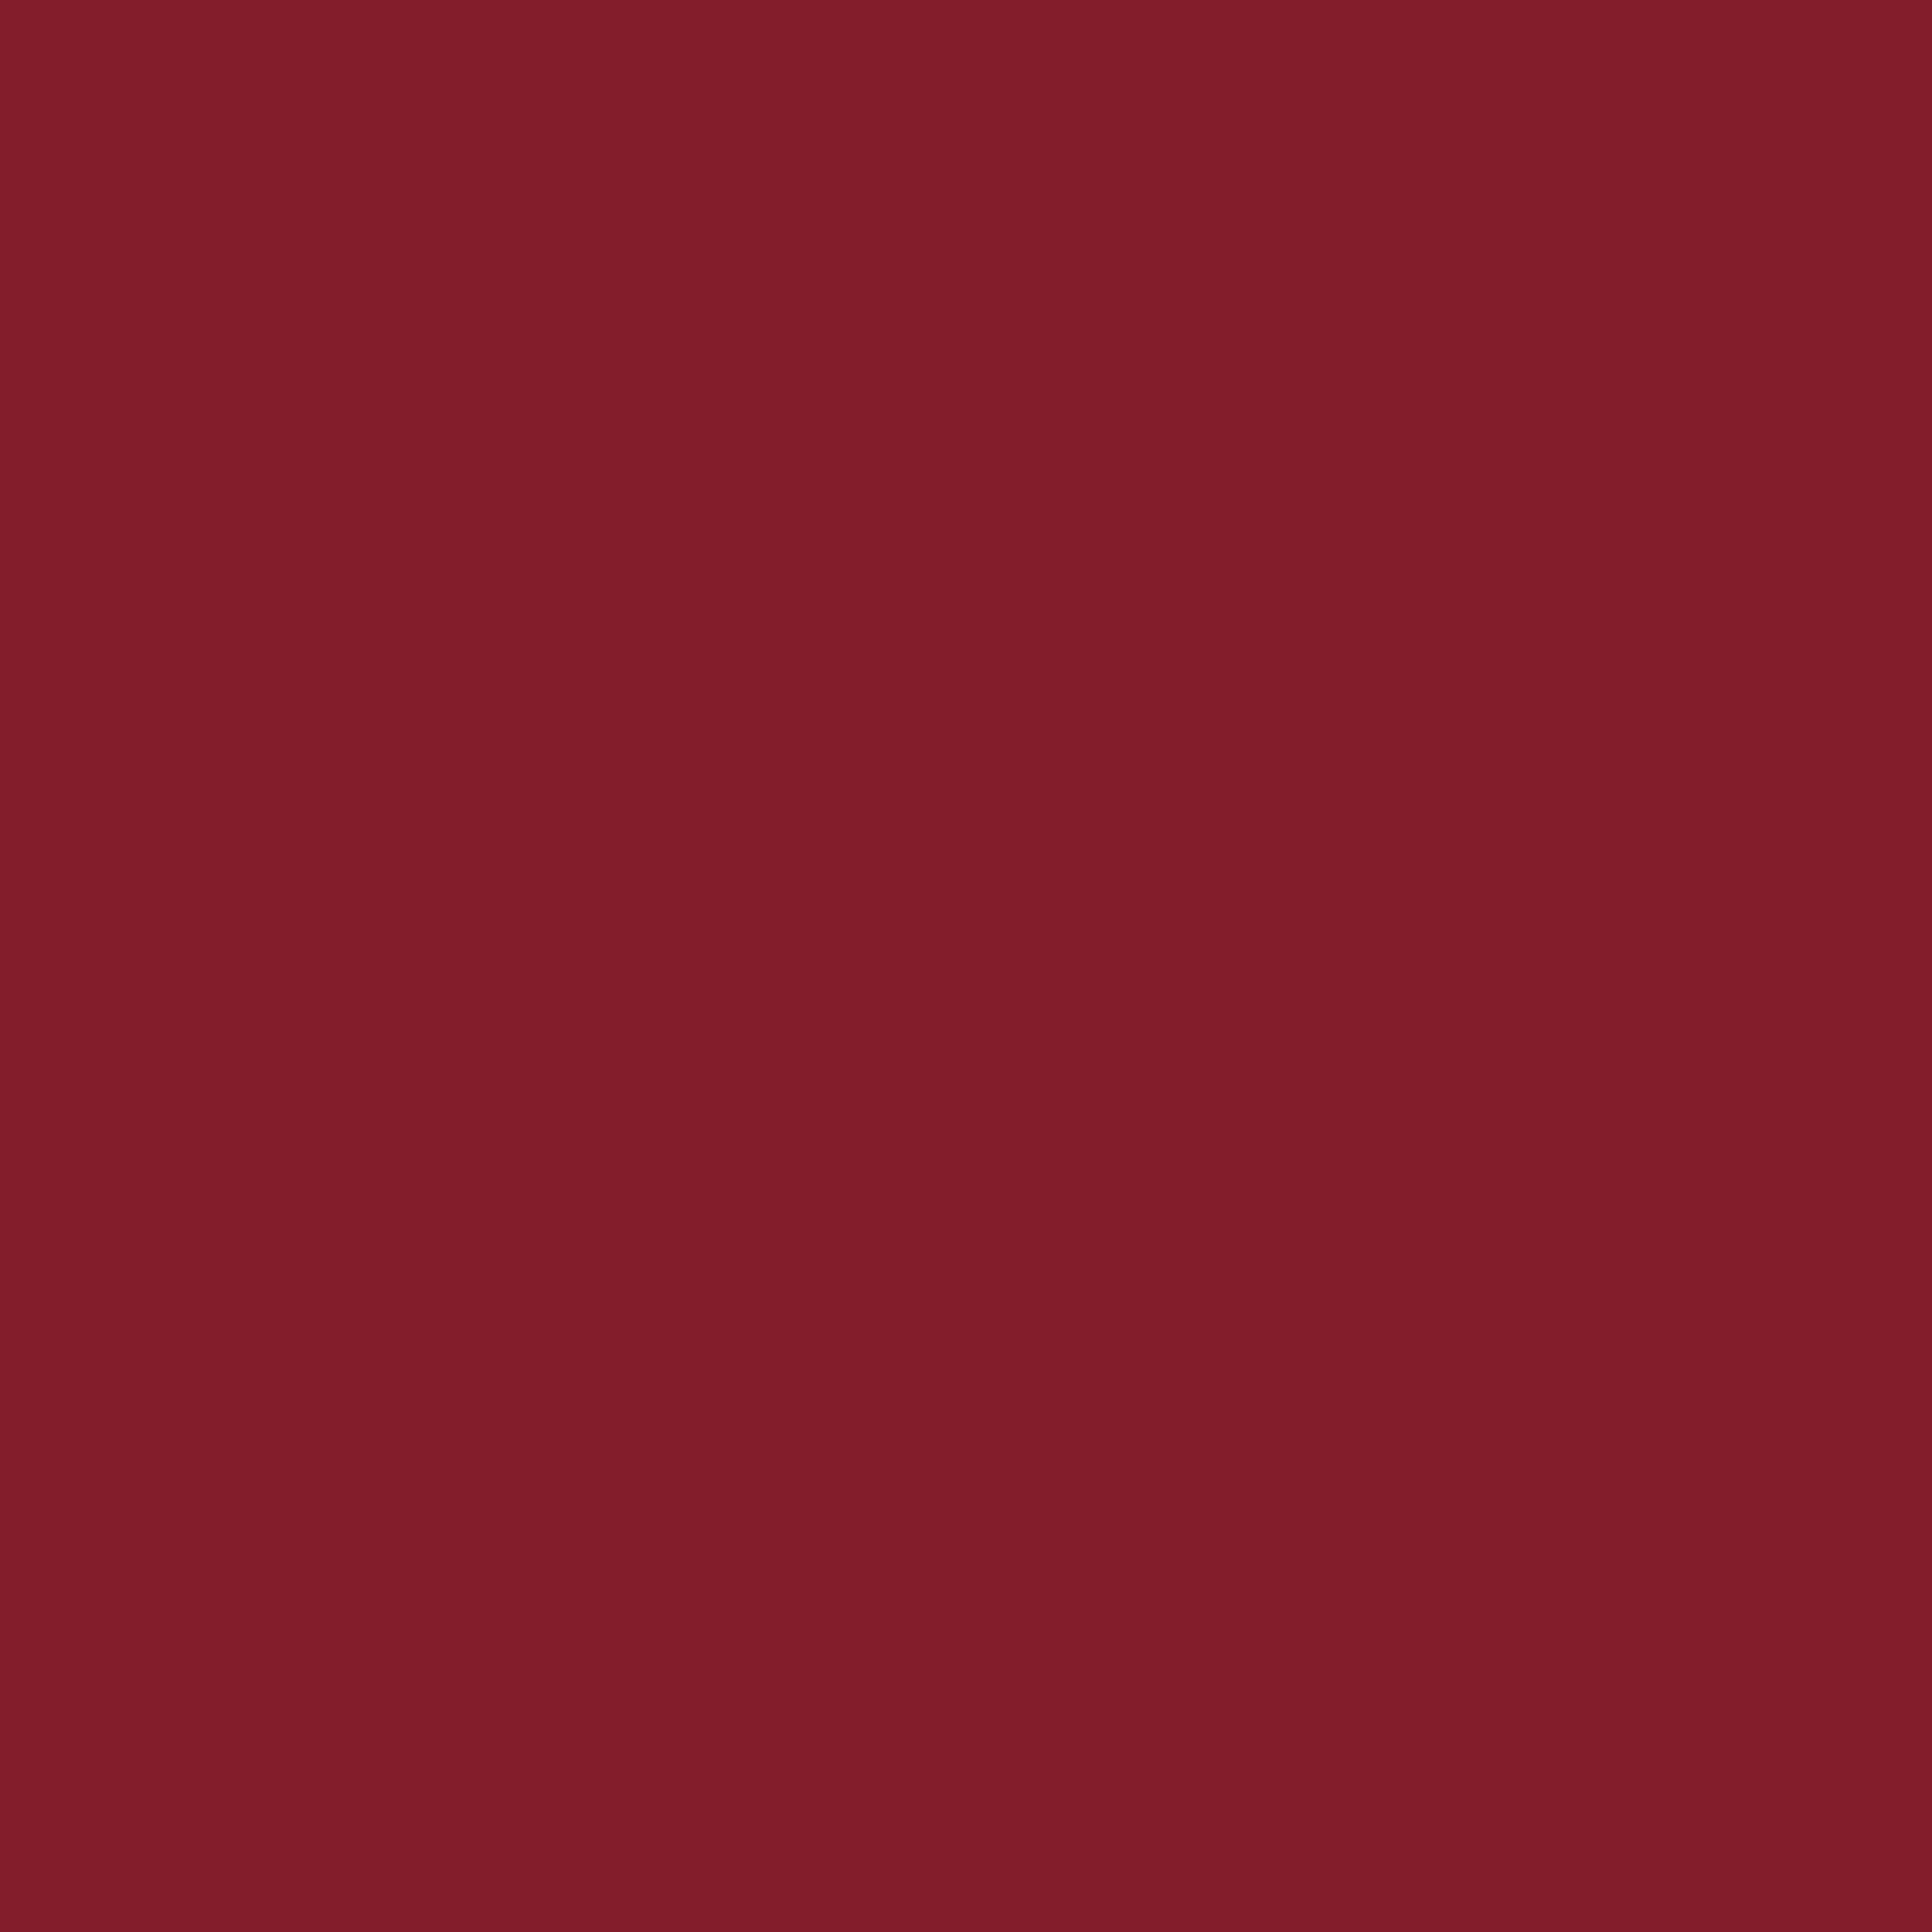 2732x2732 Antique Ruby Solid Color Background